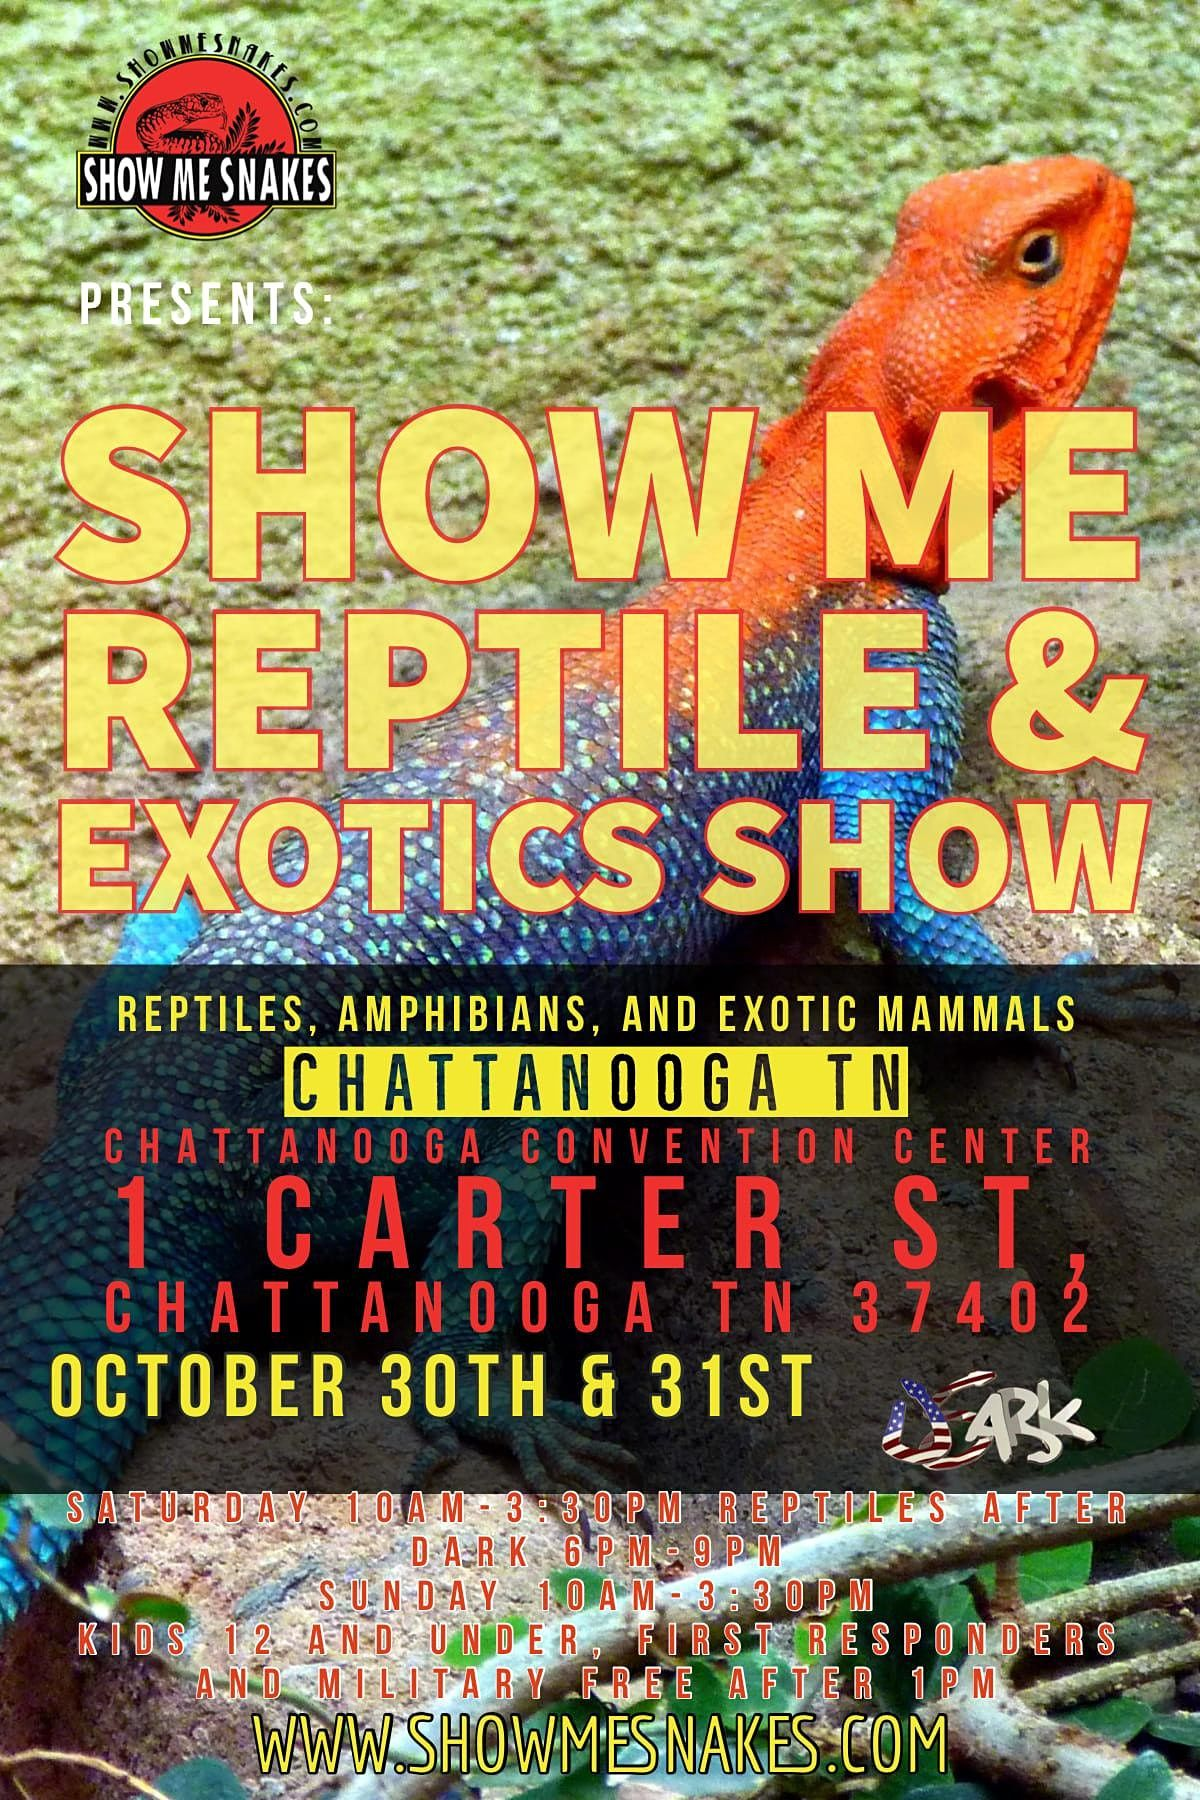 Show Me Reptile & Exotics Show (Chattanooga, TN), 30 October | Event in Chattanooga | AllEvents.in